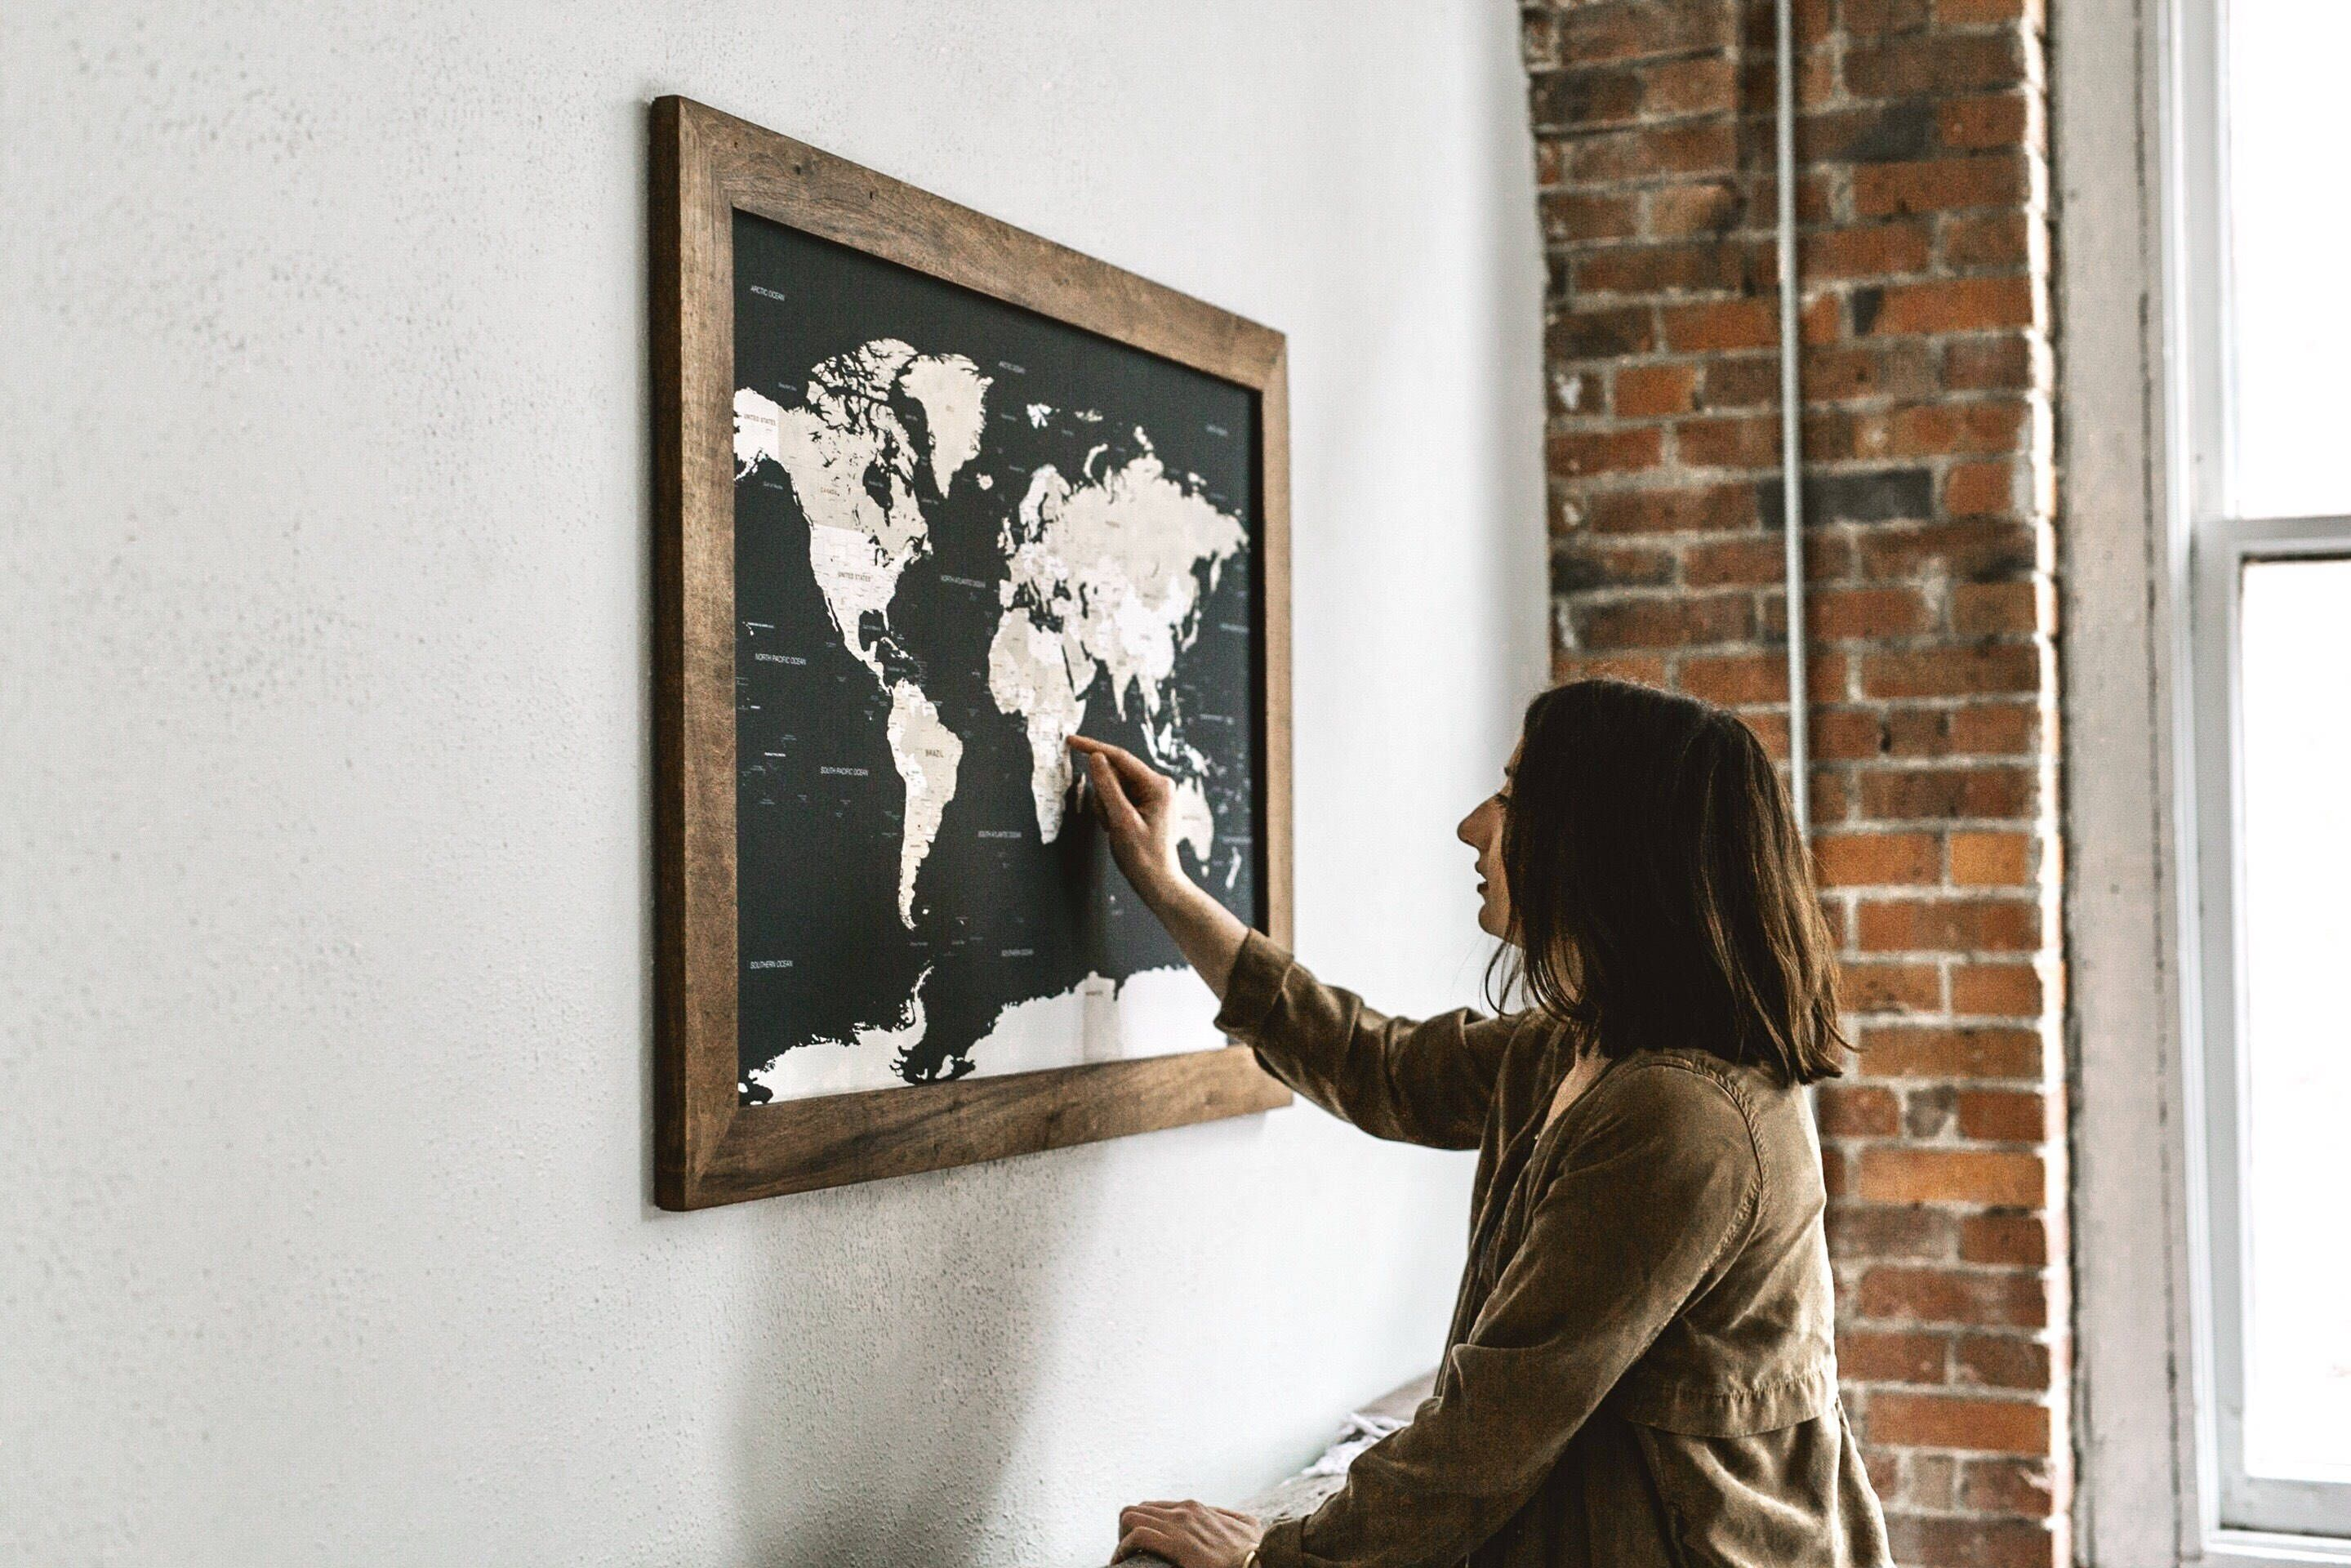 Push pin travel map world map gift for travelers world map push pin travel map world map gift for travelers world map wedding world push pin map 24x36 gifts for boyfriend gift for men by wayfaren on etsy gumiabroncs Gallery